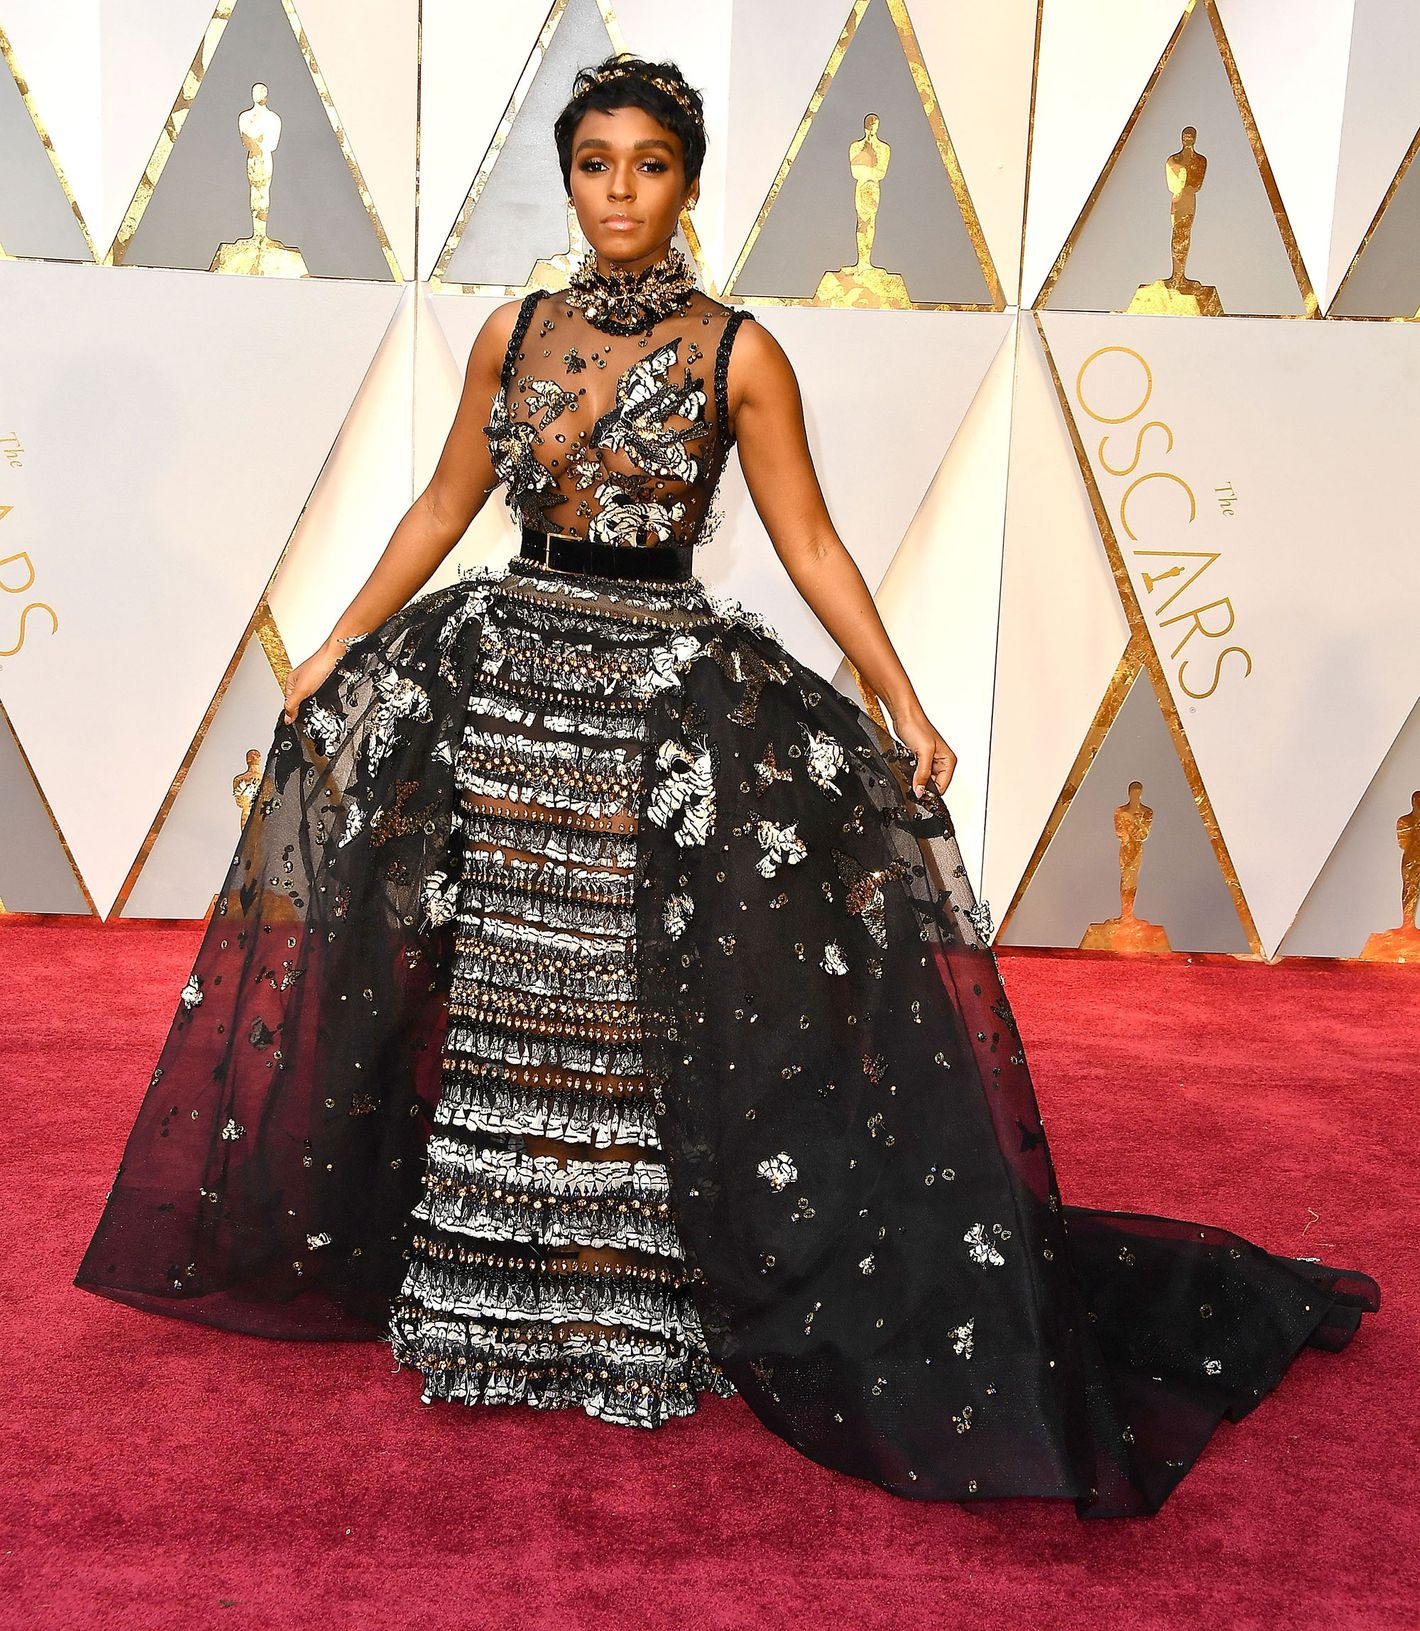 245448632 The 20 Best, Most Memorable Oscar Looks of All Time